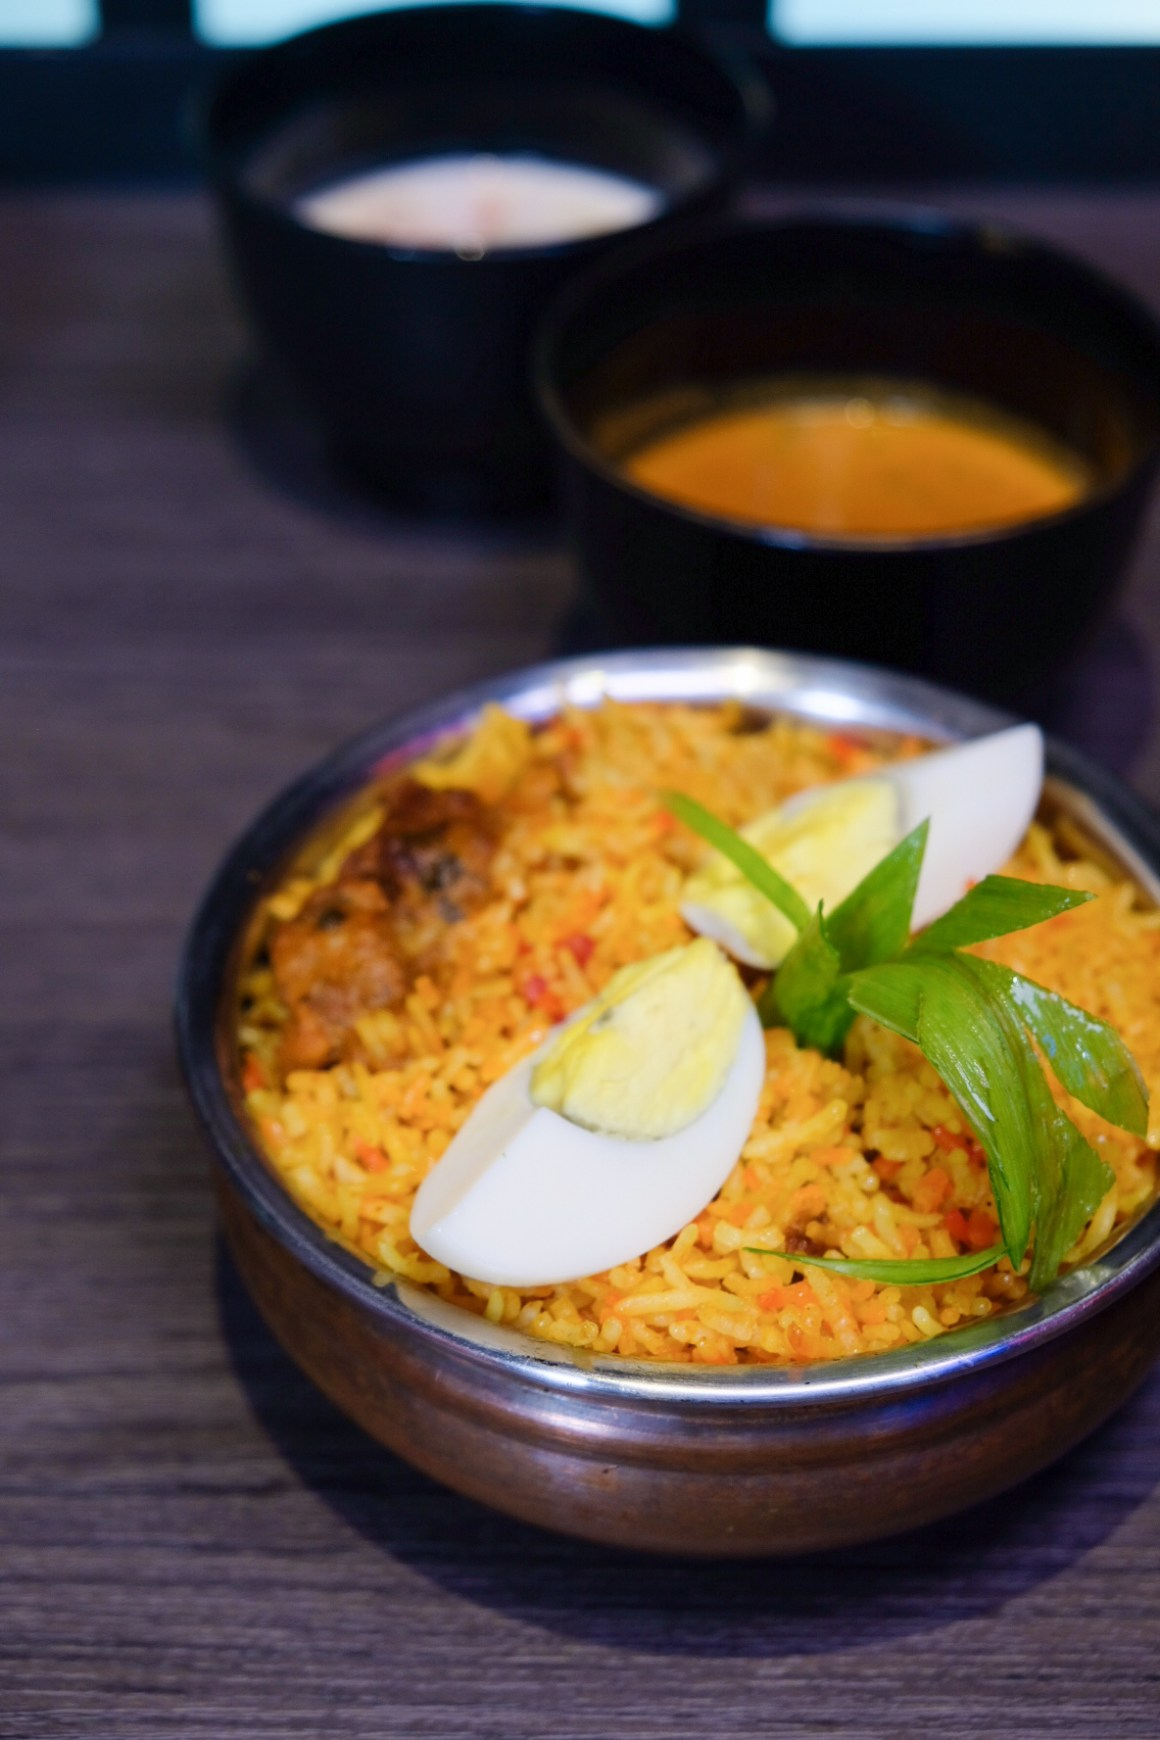 Xin Tekka The Food Hall At Tekka Place - Mutton Biryani by RW Express